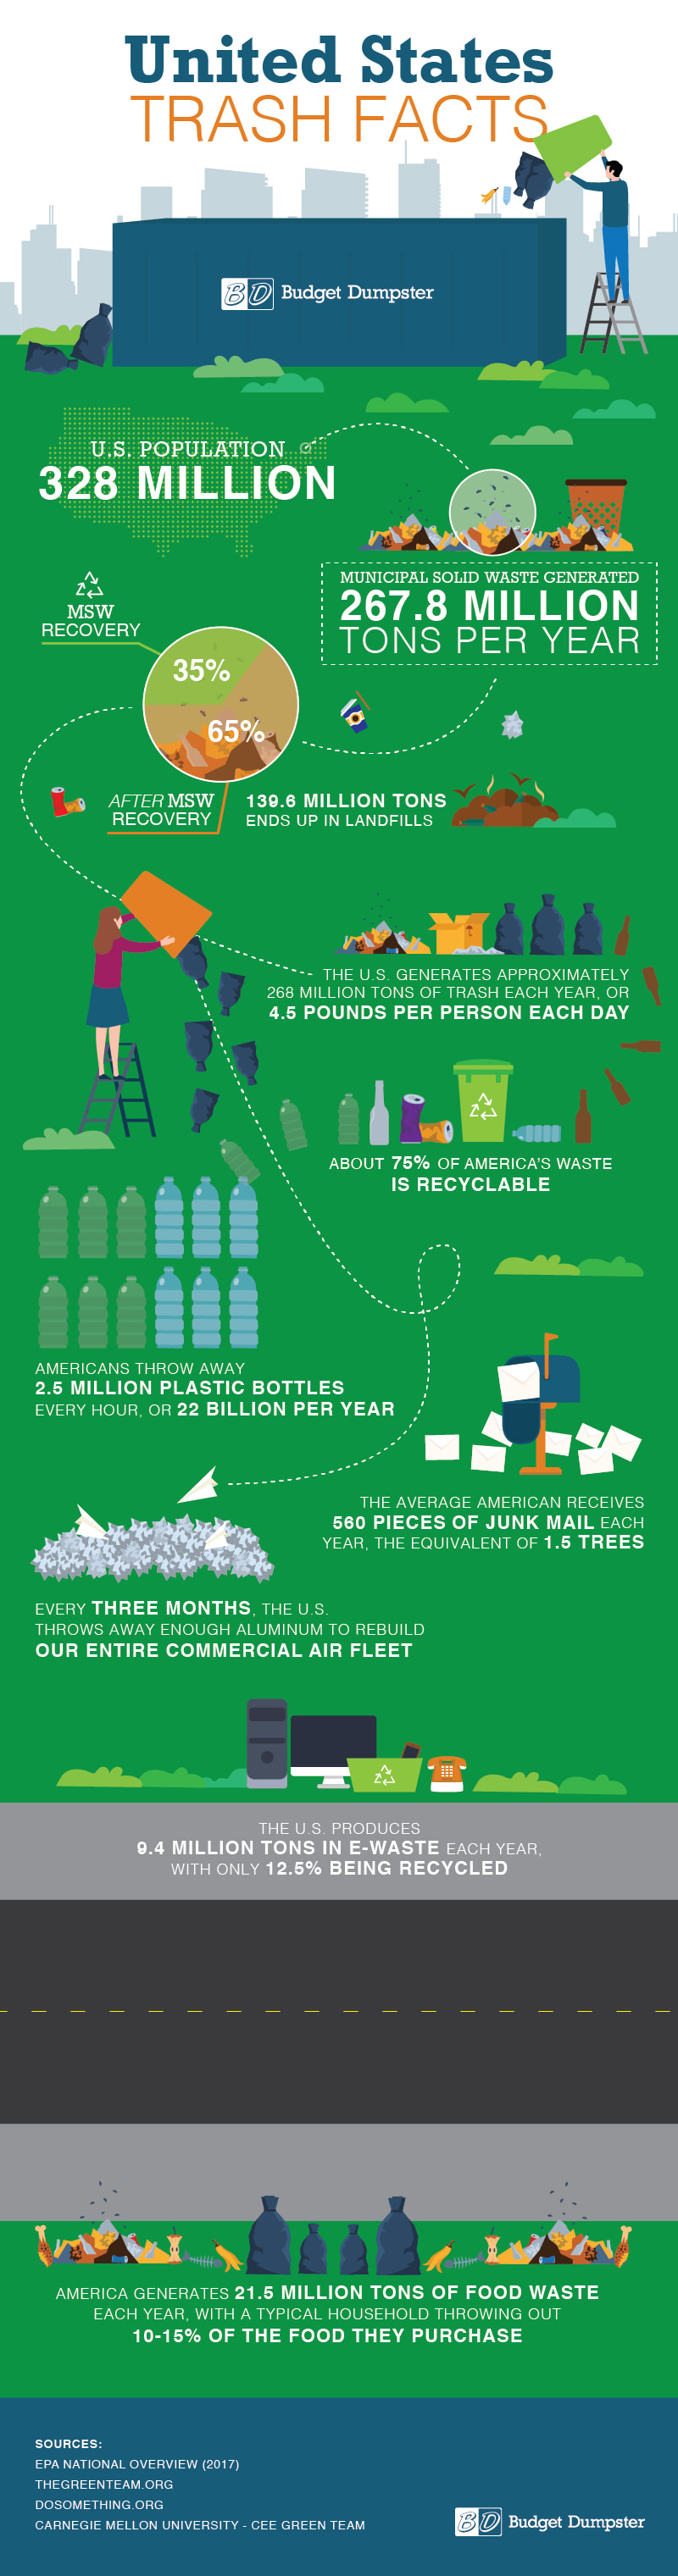 United States Trash Facts Infographic